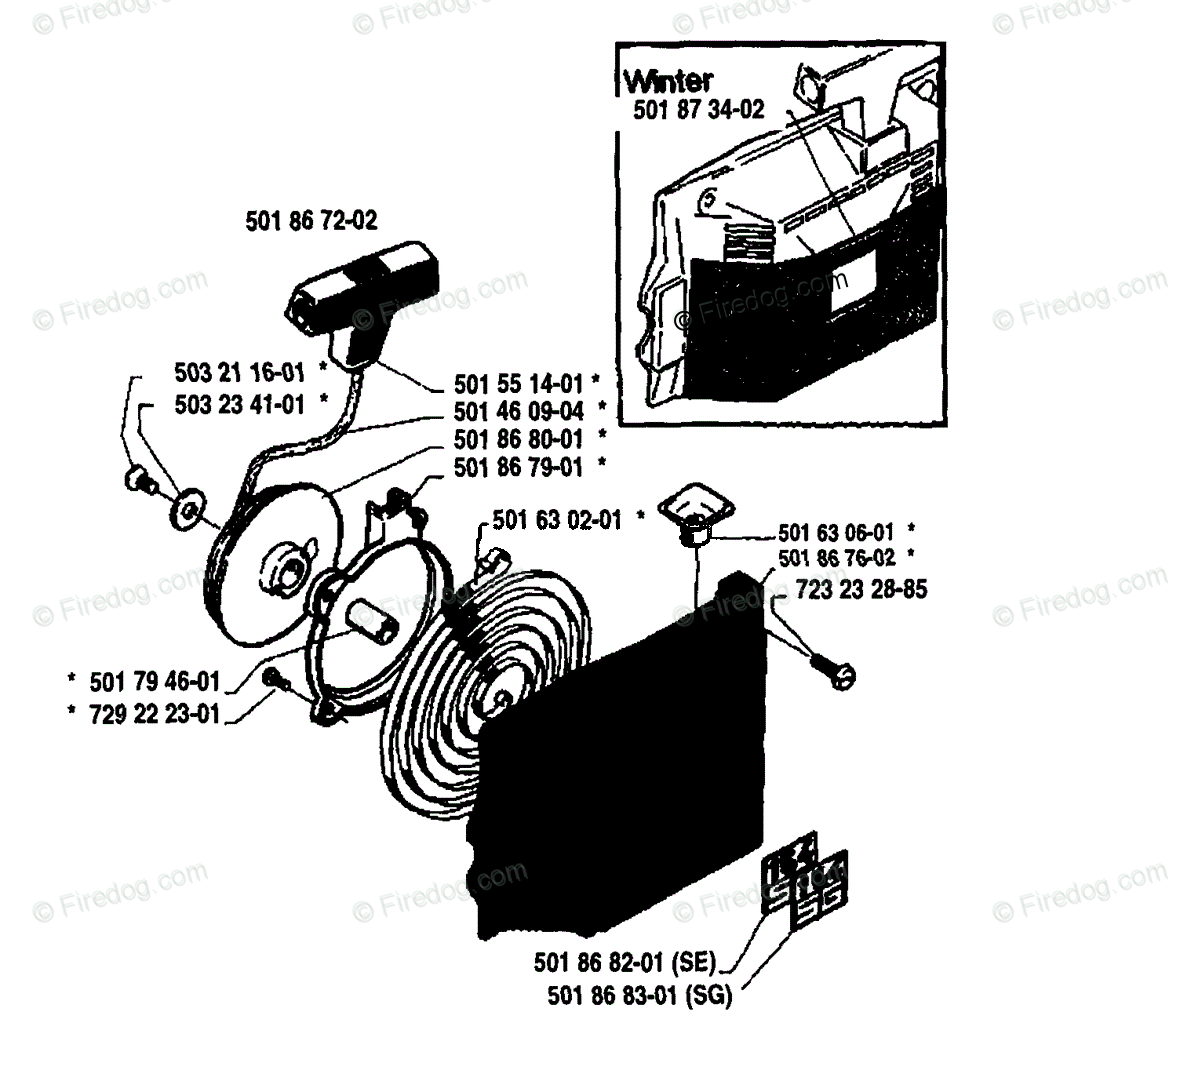 1999 Ford Explorer Fuse Box Diagram Besides 2009 Gmc Savana Conversion